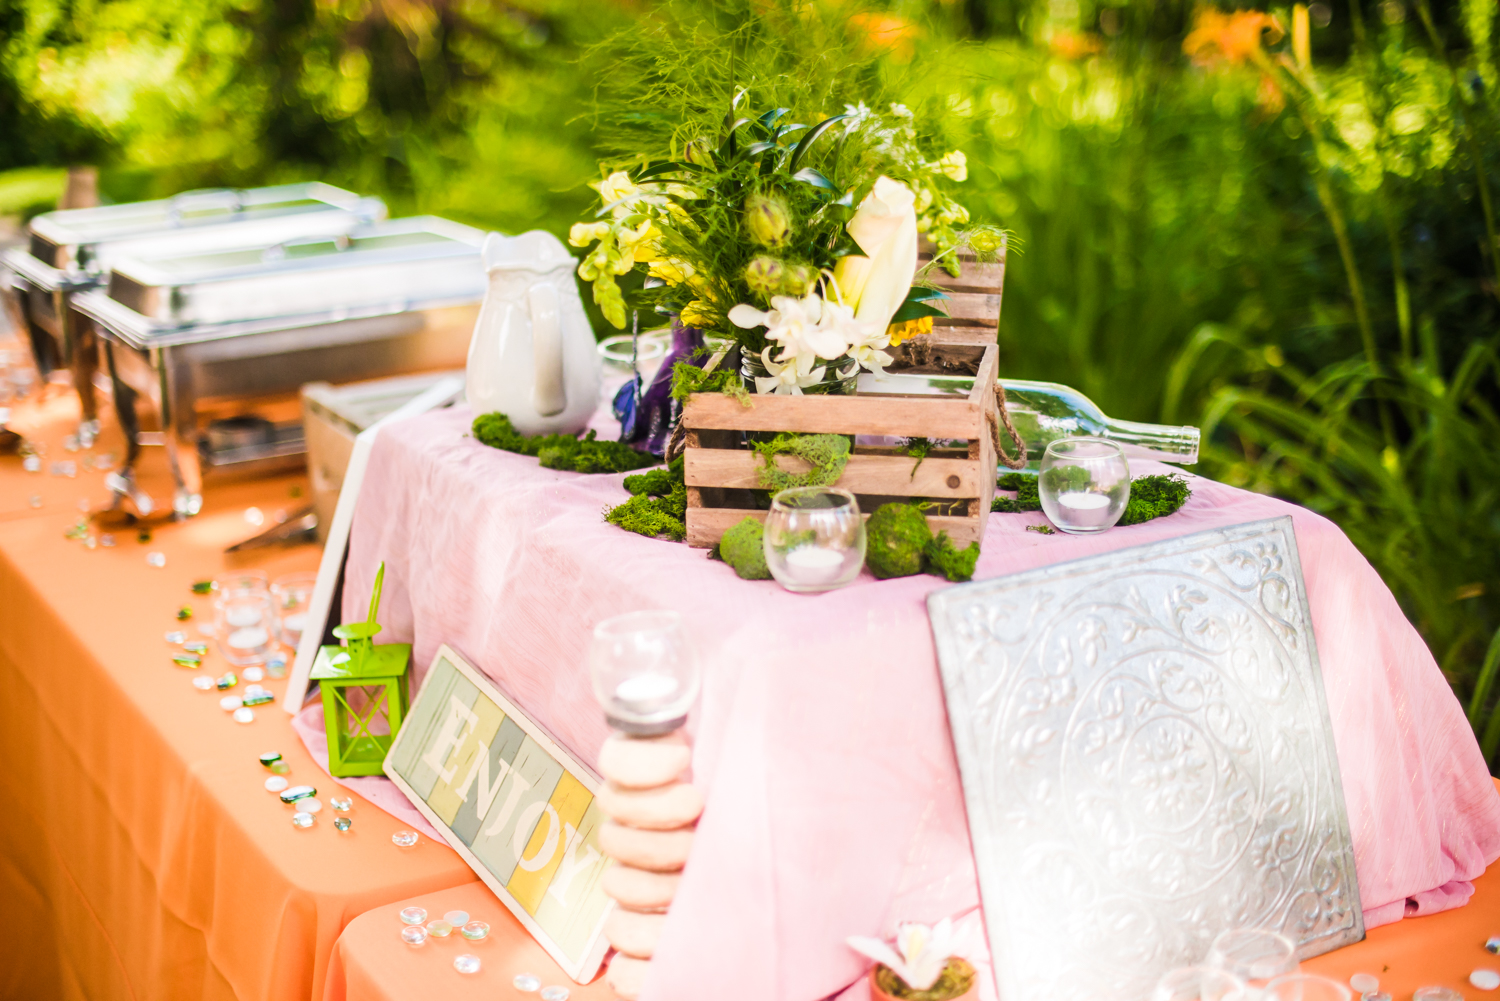 Spice of life catering.Photographed by JMGant Photography.